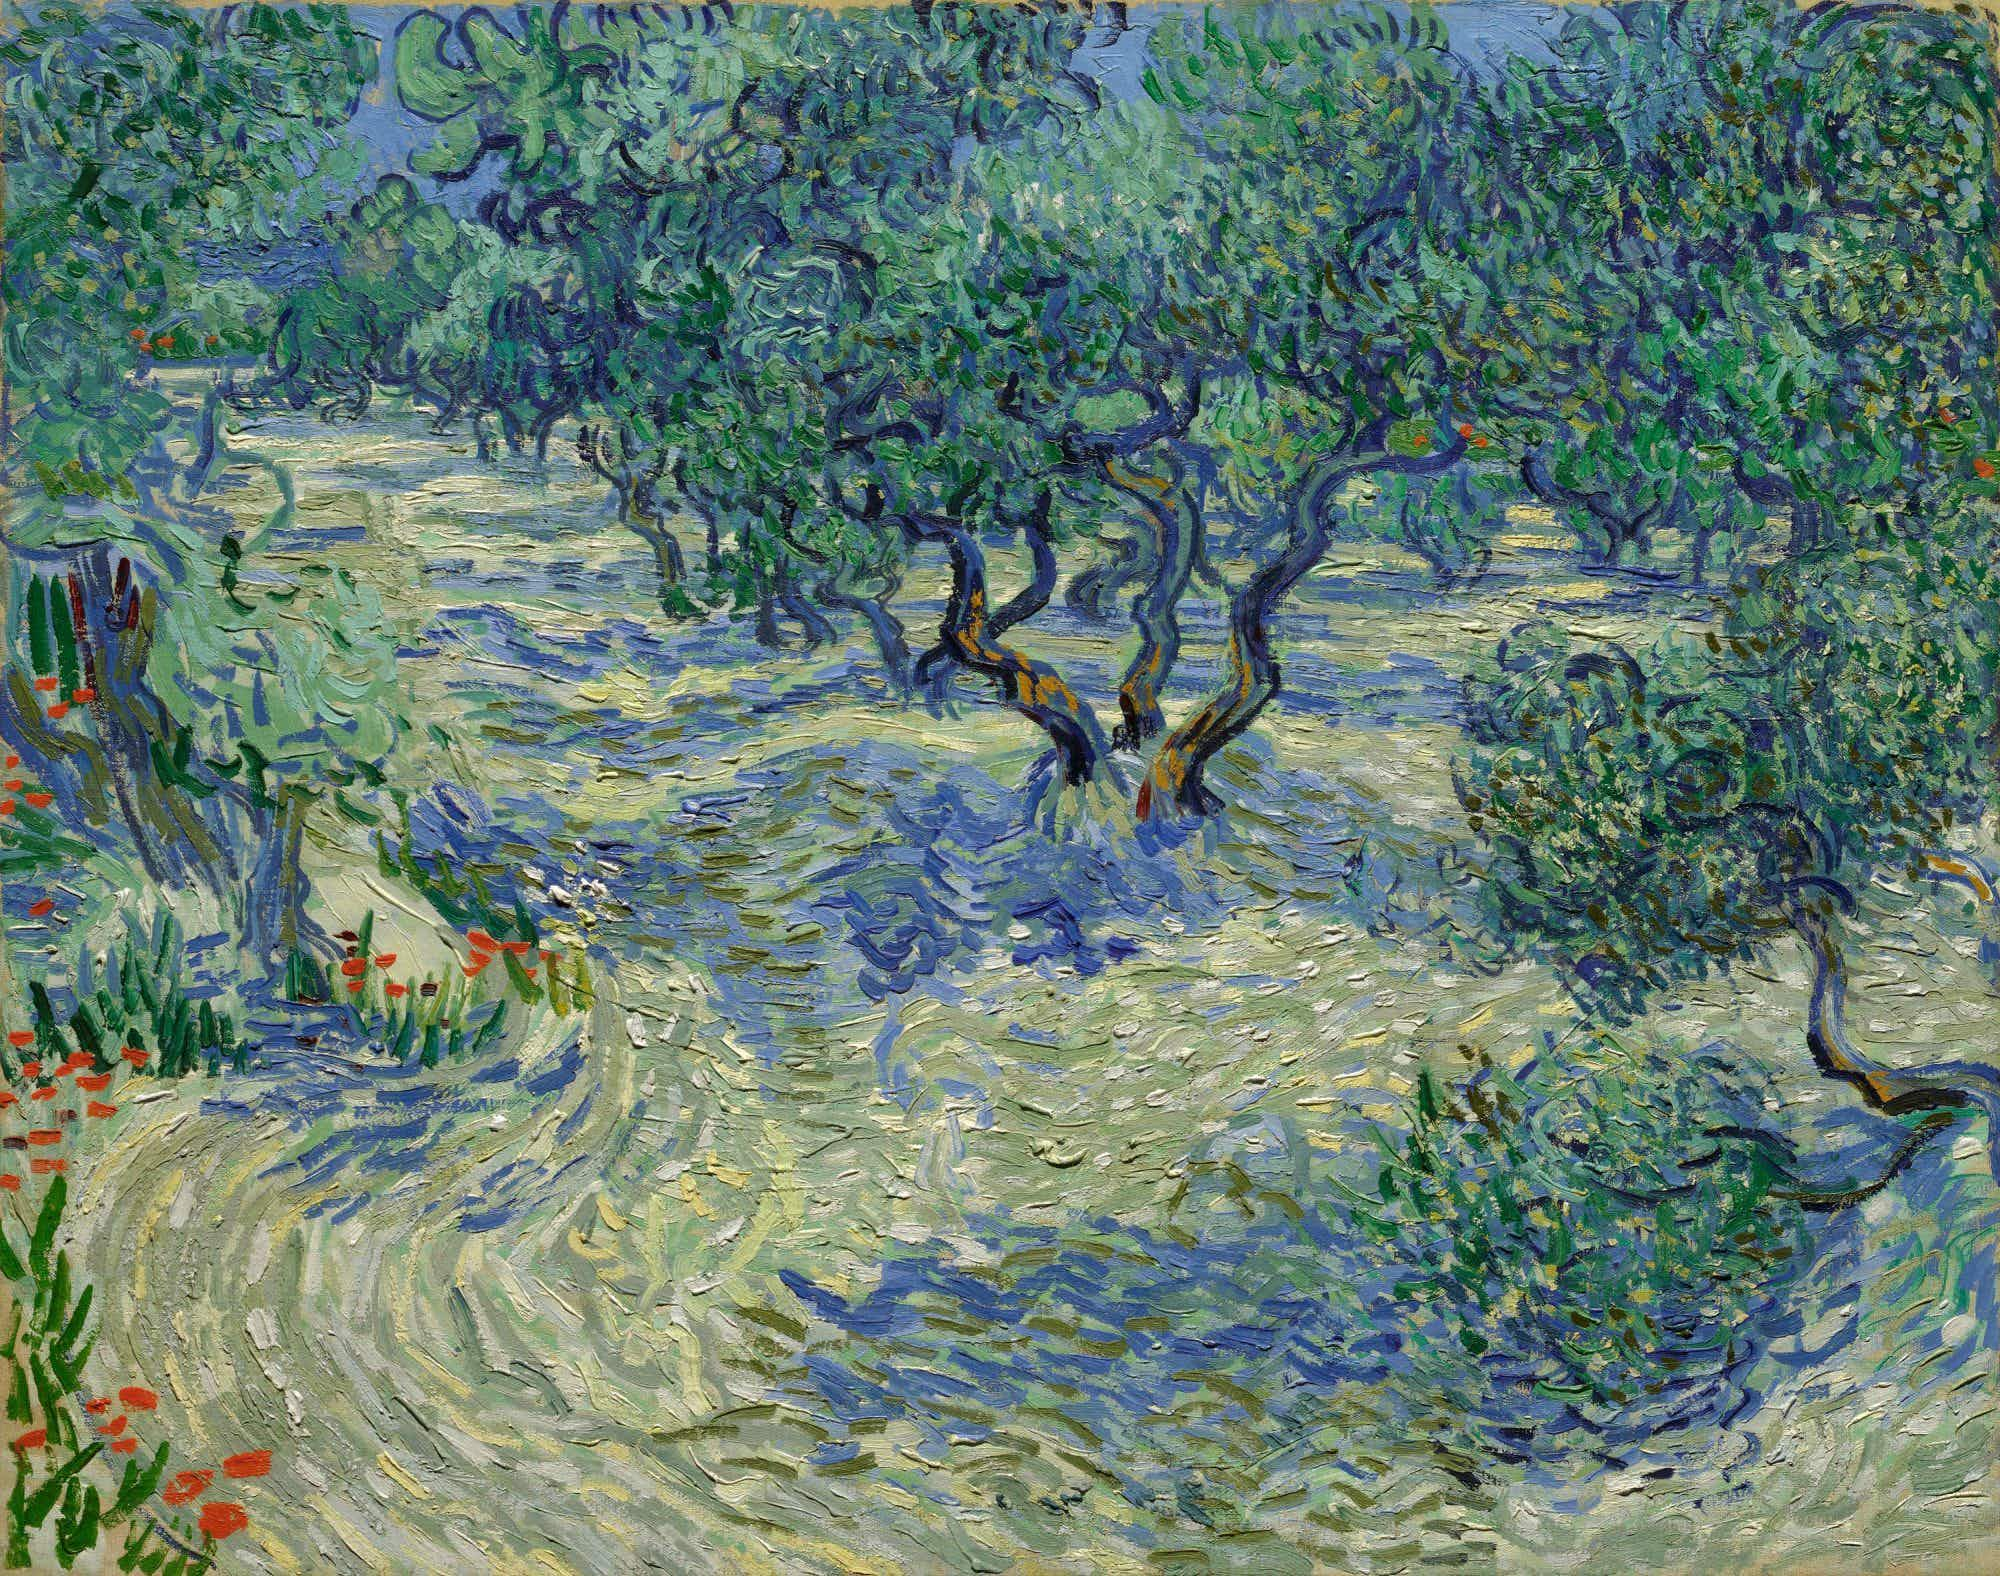 A grasshopper discovered embedded in a Van Gogh painting for 128 years